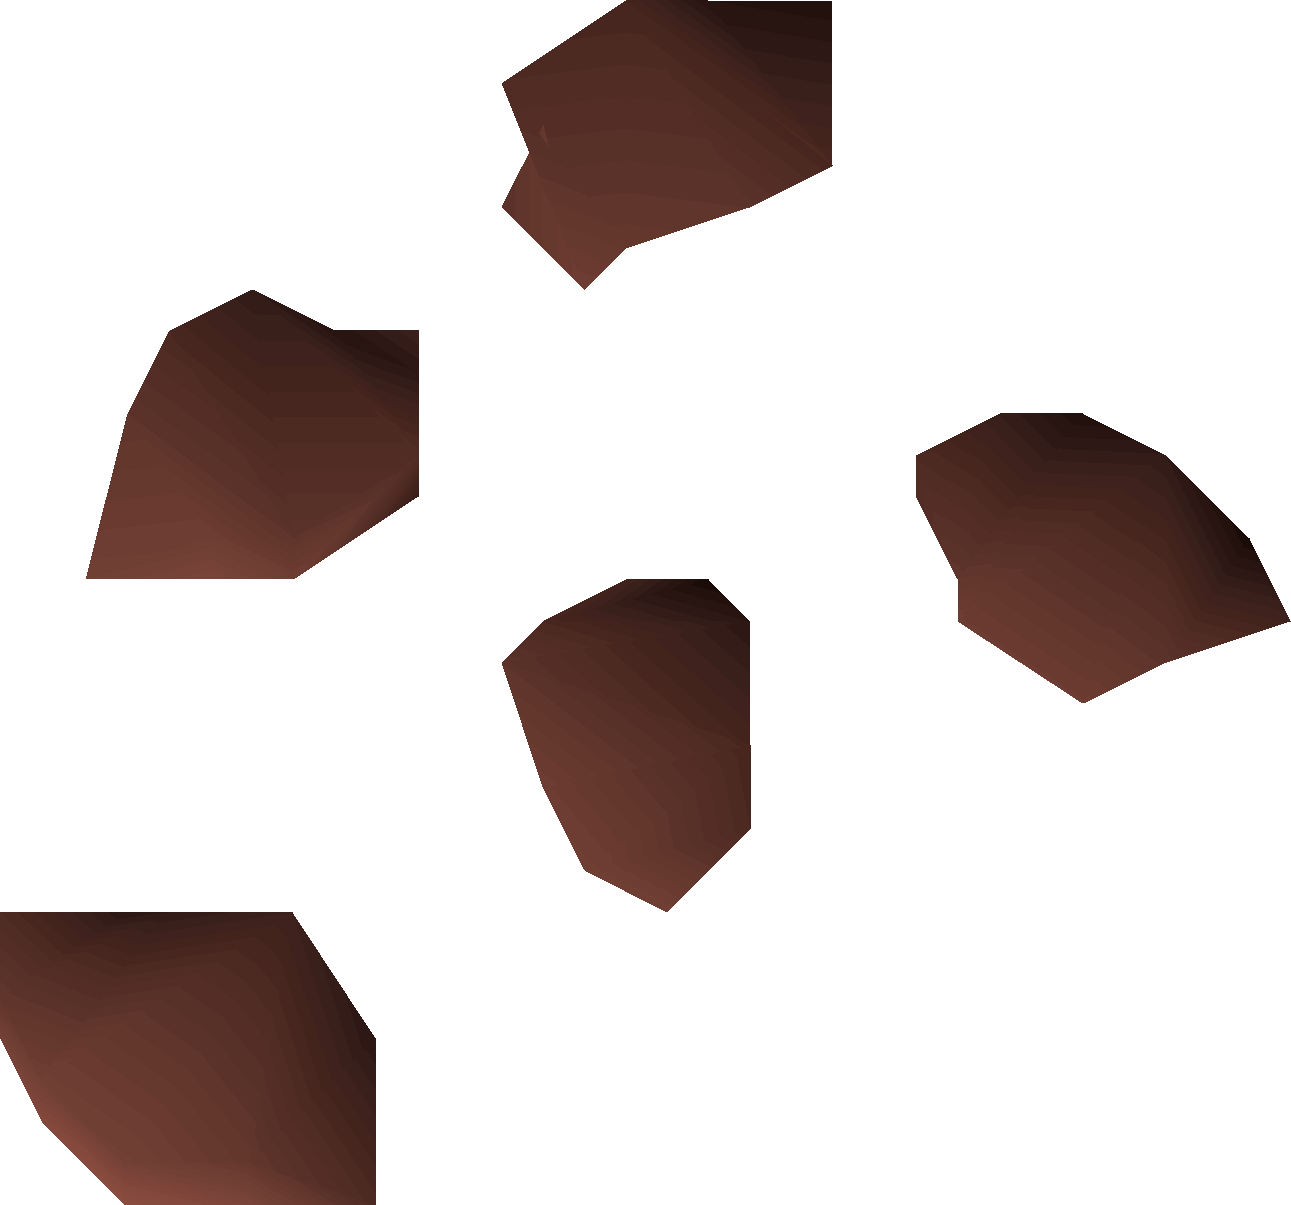 Pineapple seed - OSRS Wiki